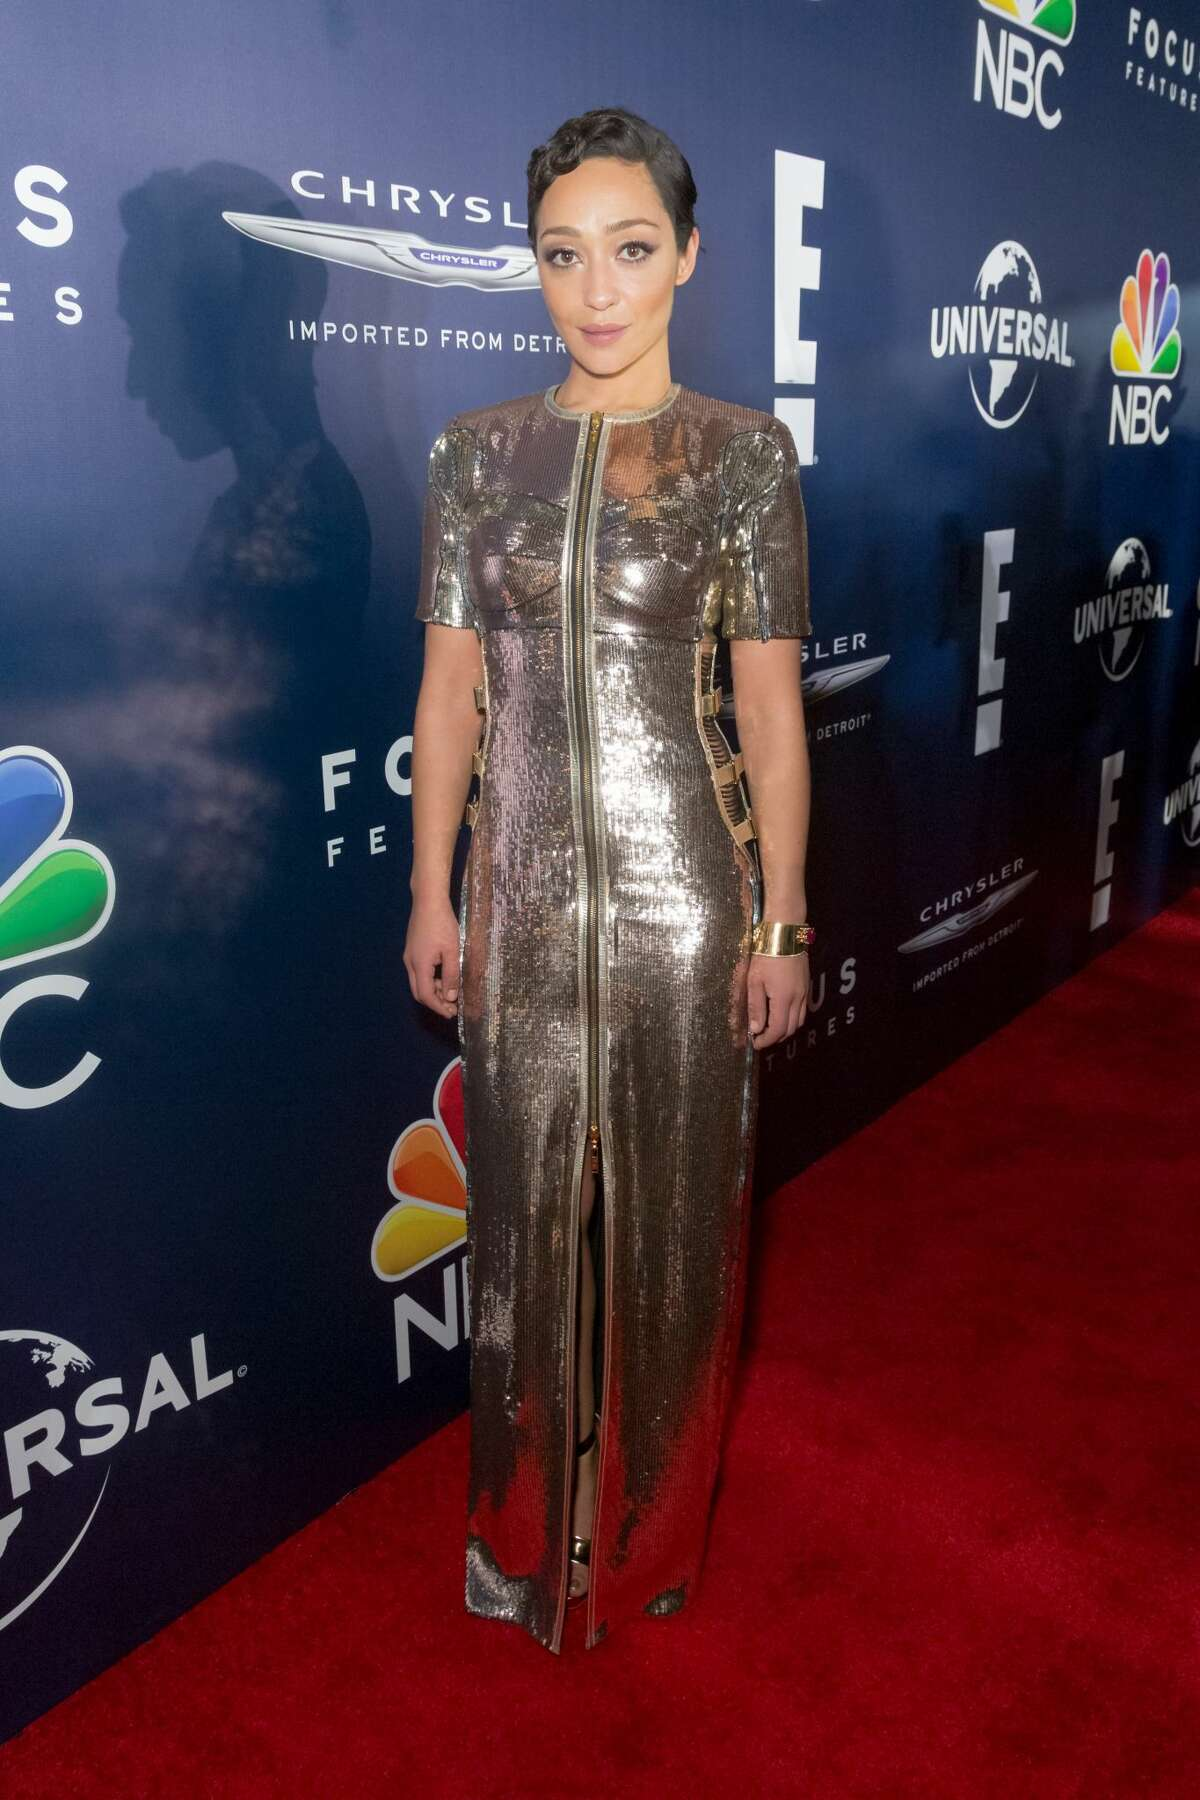 Actress Ruth Negga arrives at the NBCUniversal's 74th Annual Golden Globes After Party at The Beverly Hilton Hotel on January 8, 2017 in Beverly Hills, California.